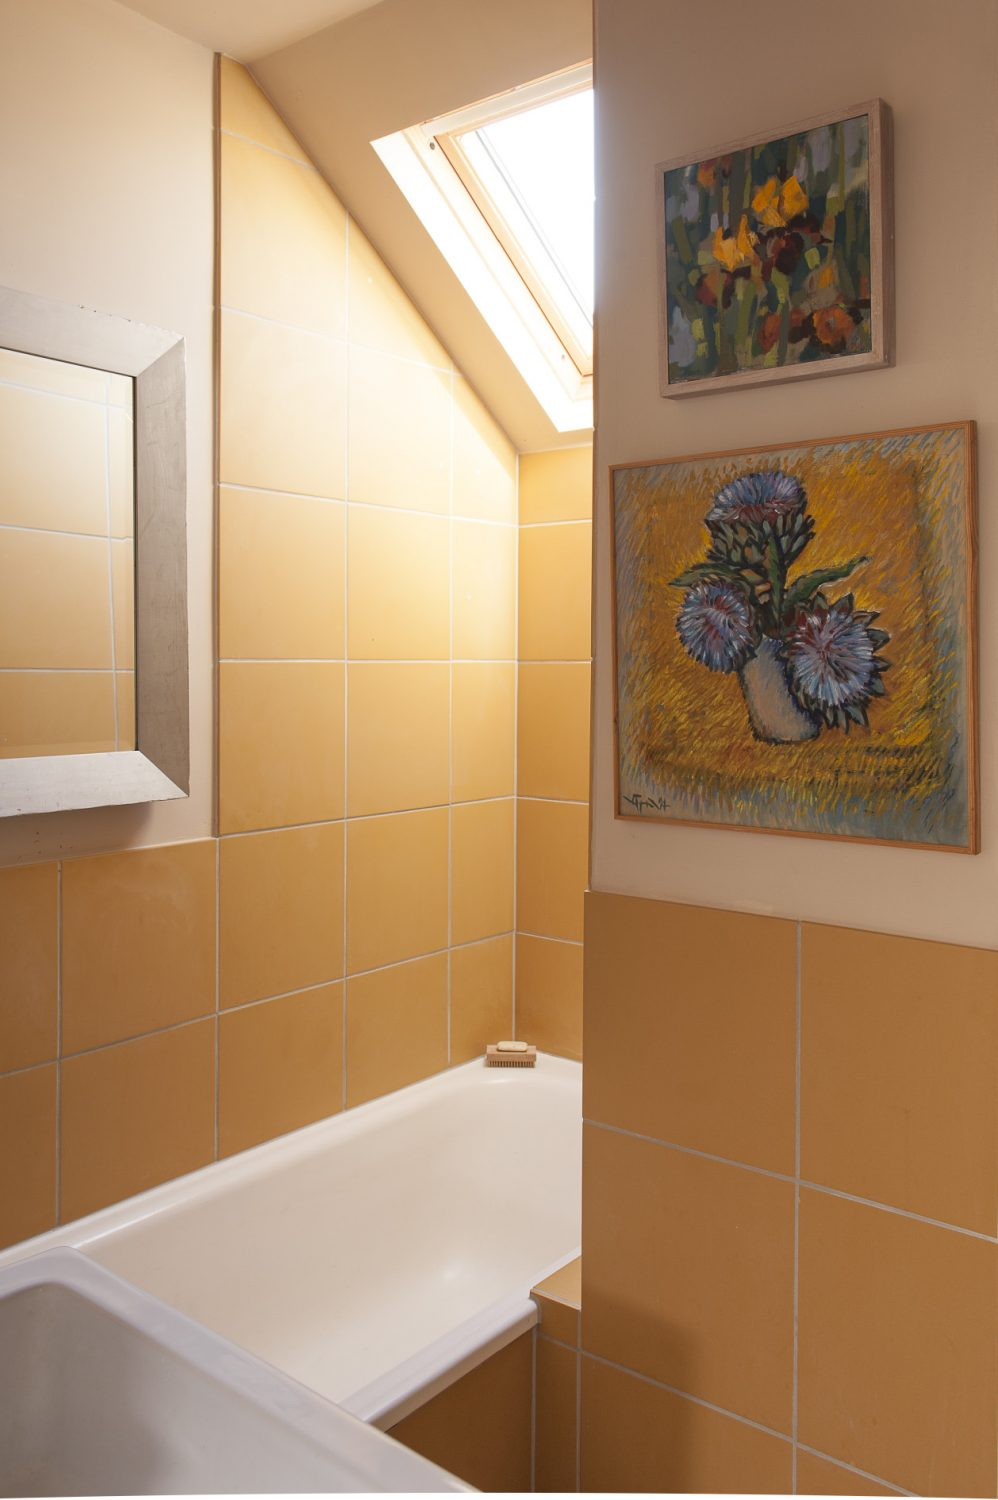 Francine used floor tiles from Fired Earth on the walls of her shower room